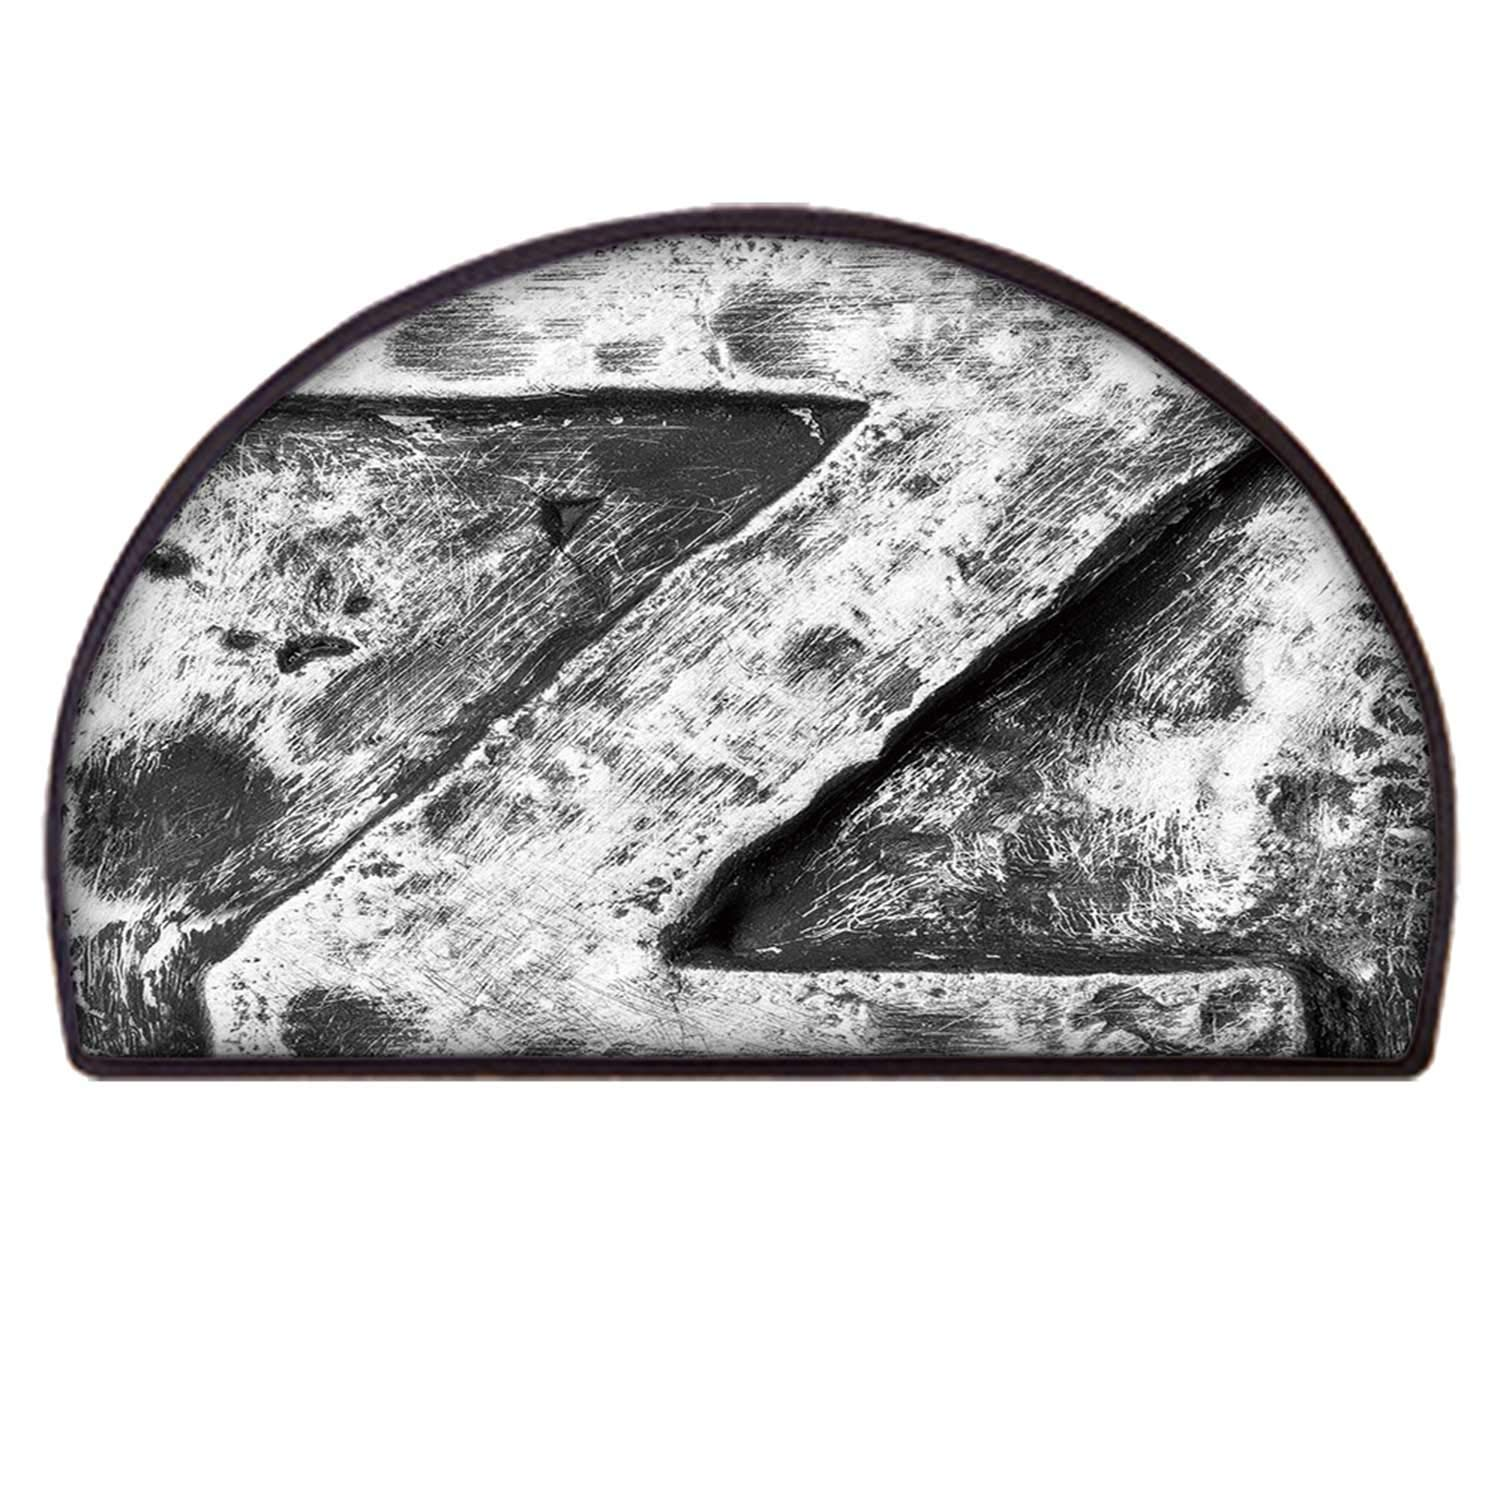 C COABALLA Letter Z Simple Semicircle Mat,Capital Z Letter Name Identity Initials VIP Rusty Tone Effects Aged Look Print Decorative for Living Room,65 x 130cm / 25.59 x 51.18 inch by C COABALLA